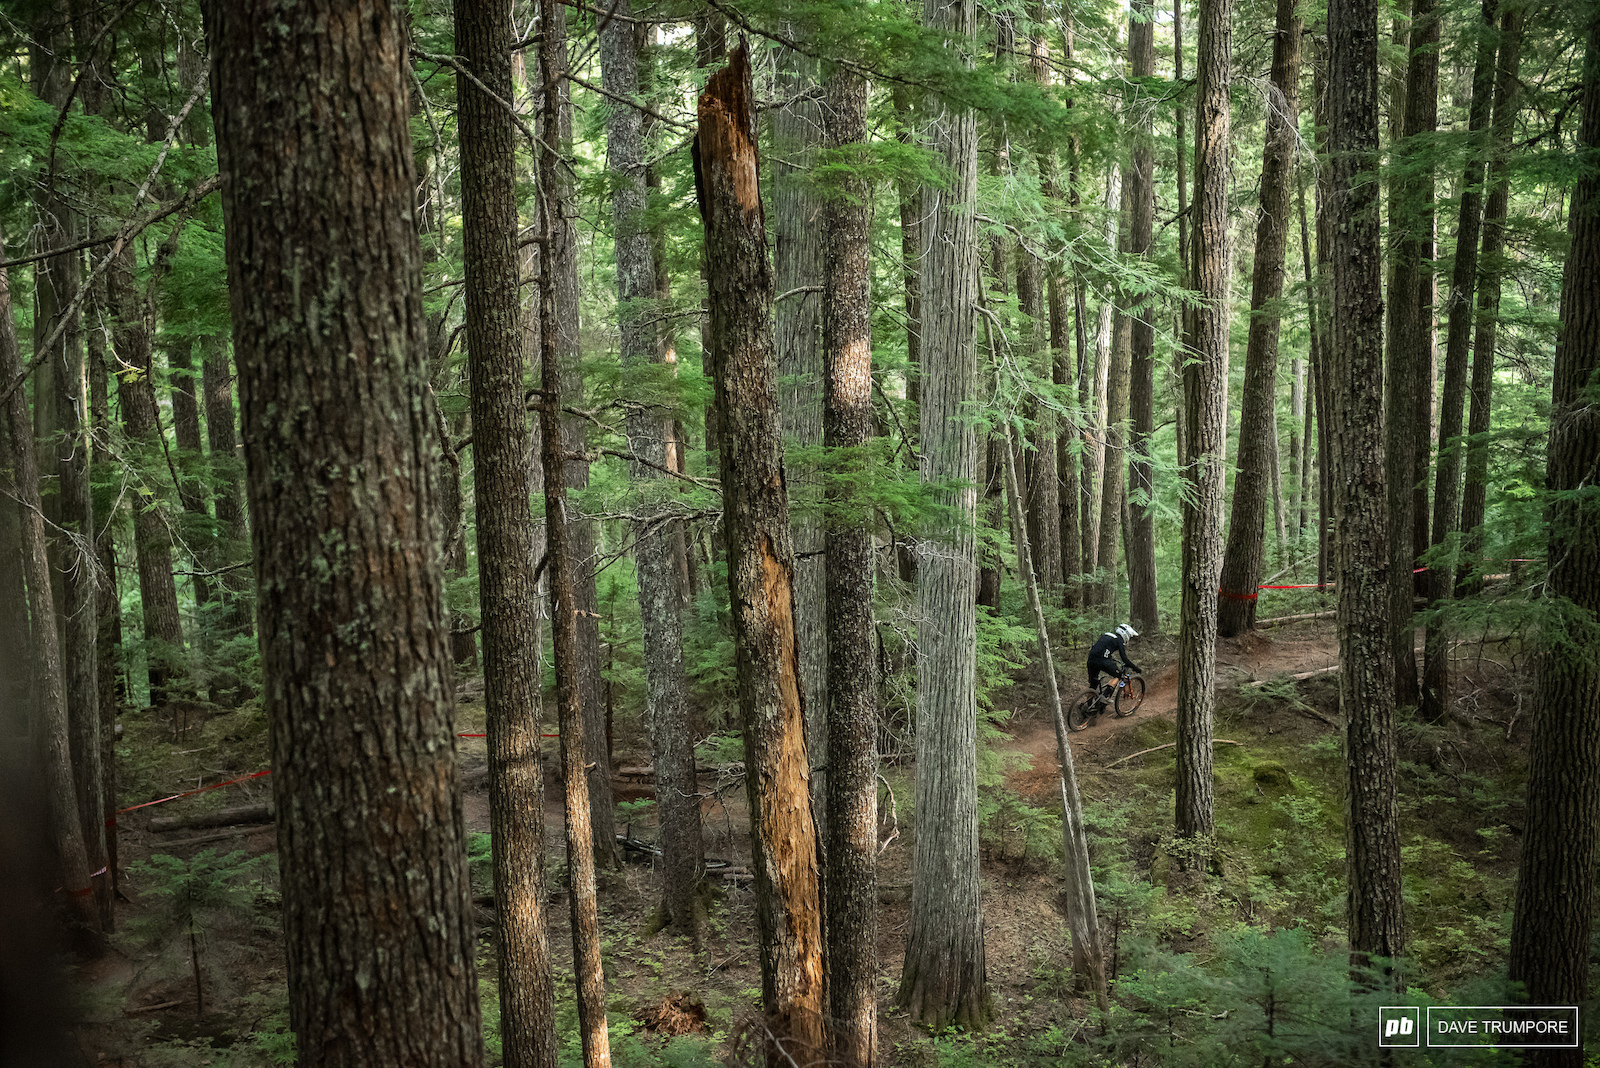 Stages 1 and 2 make their way down some classic trails through the woods on Blackcomb.